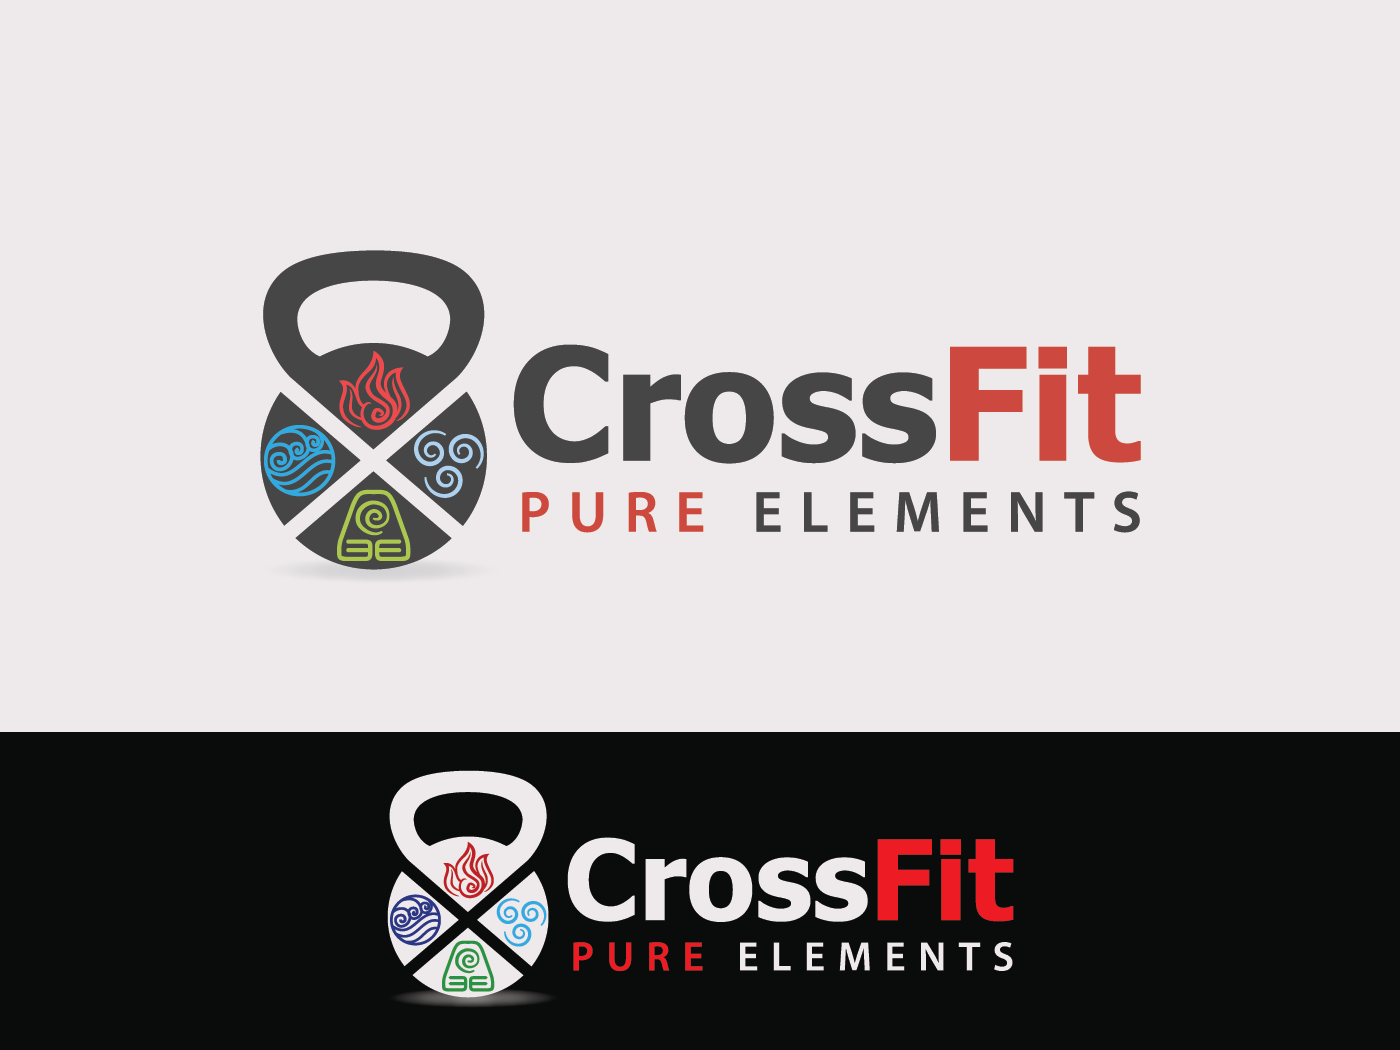 Create an inspiring logo for Crossfit Pure Elements